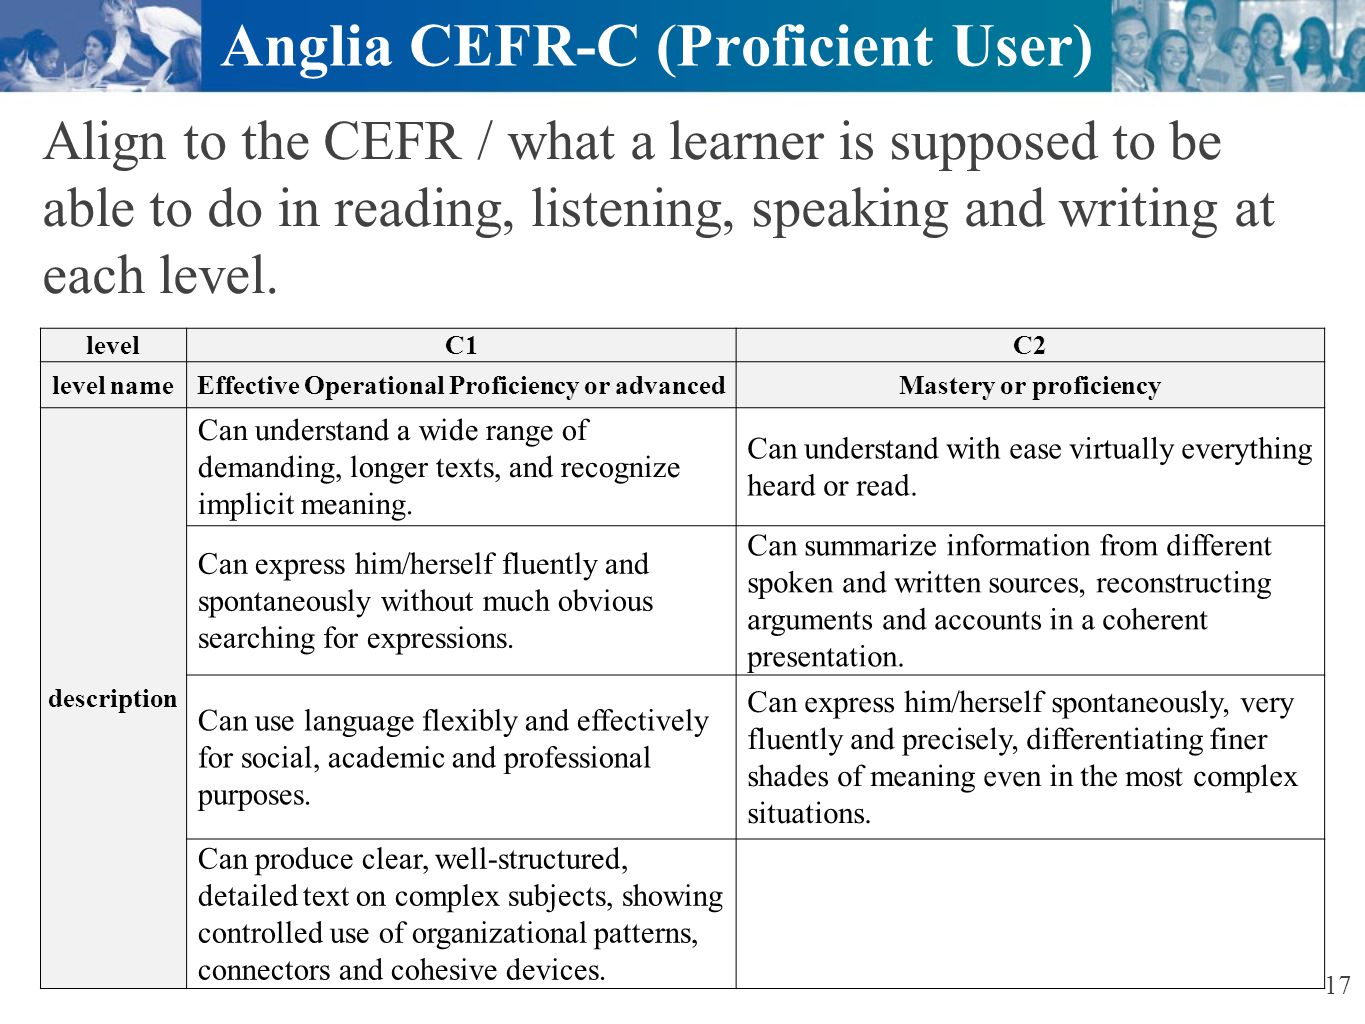 Anglia CEFR-C (Proficient User)